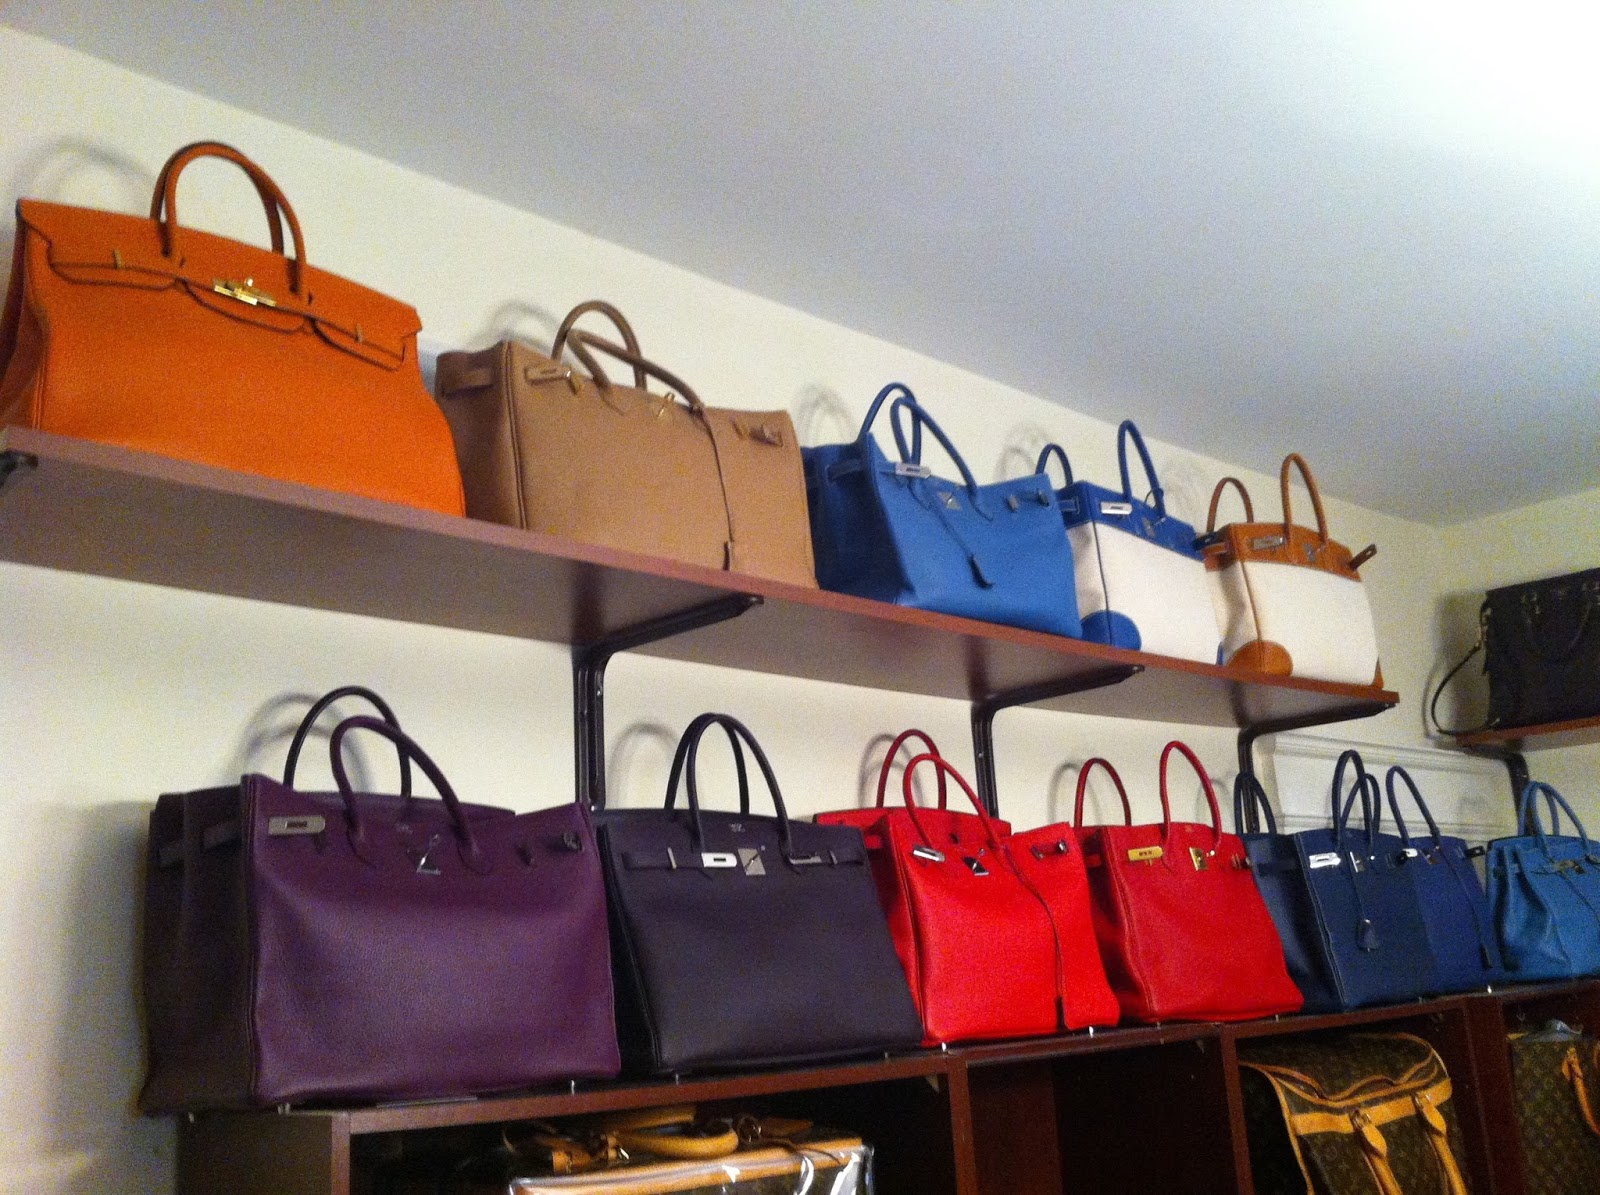 celine handbags cost - My Birkin Blog: Send Us Photos